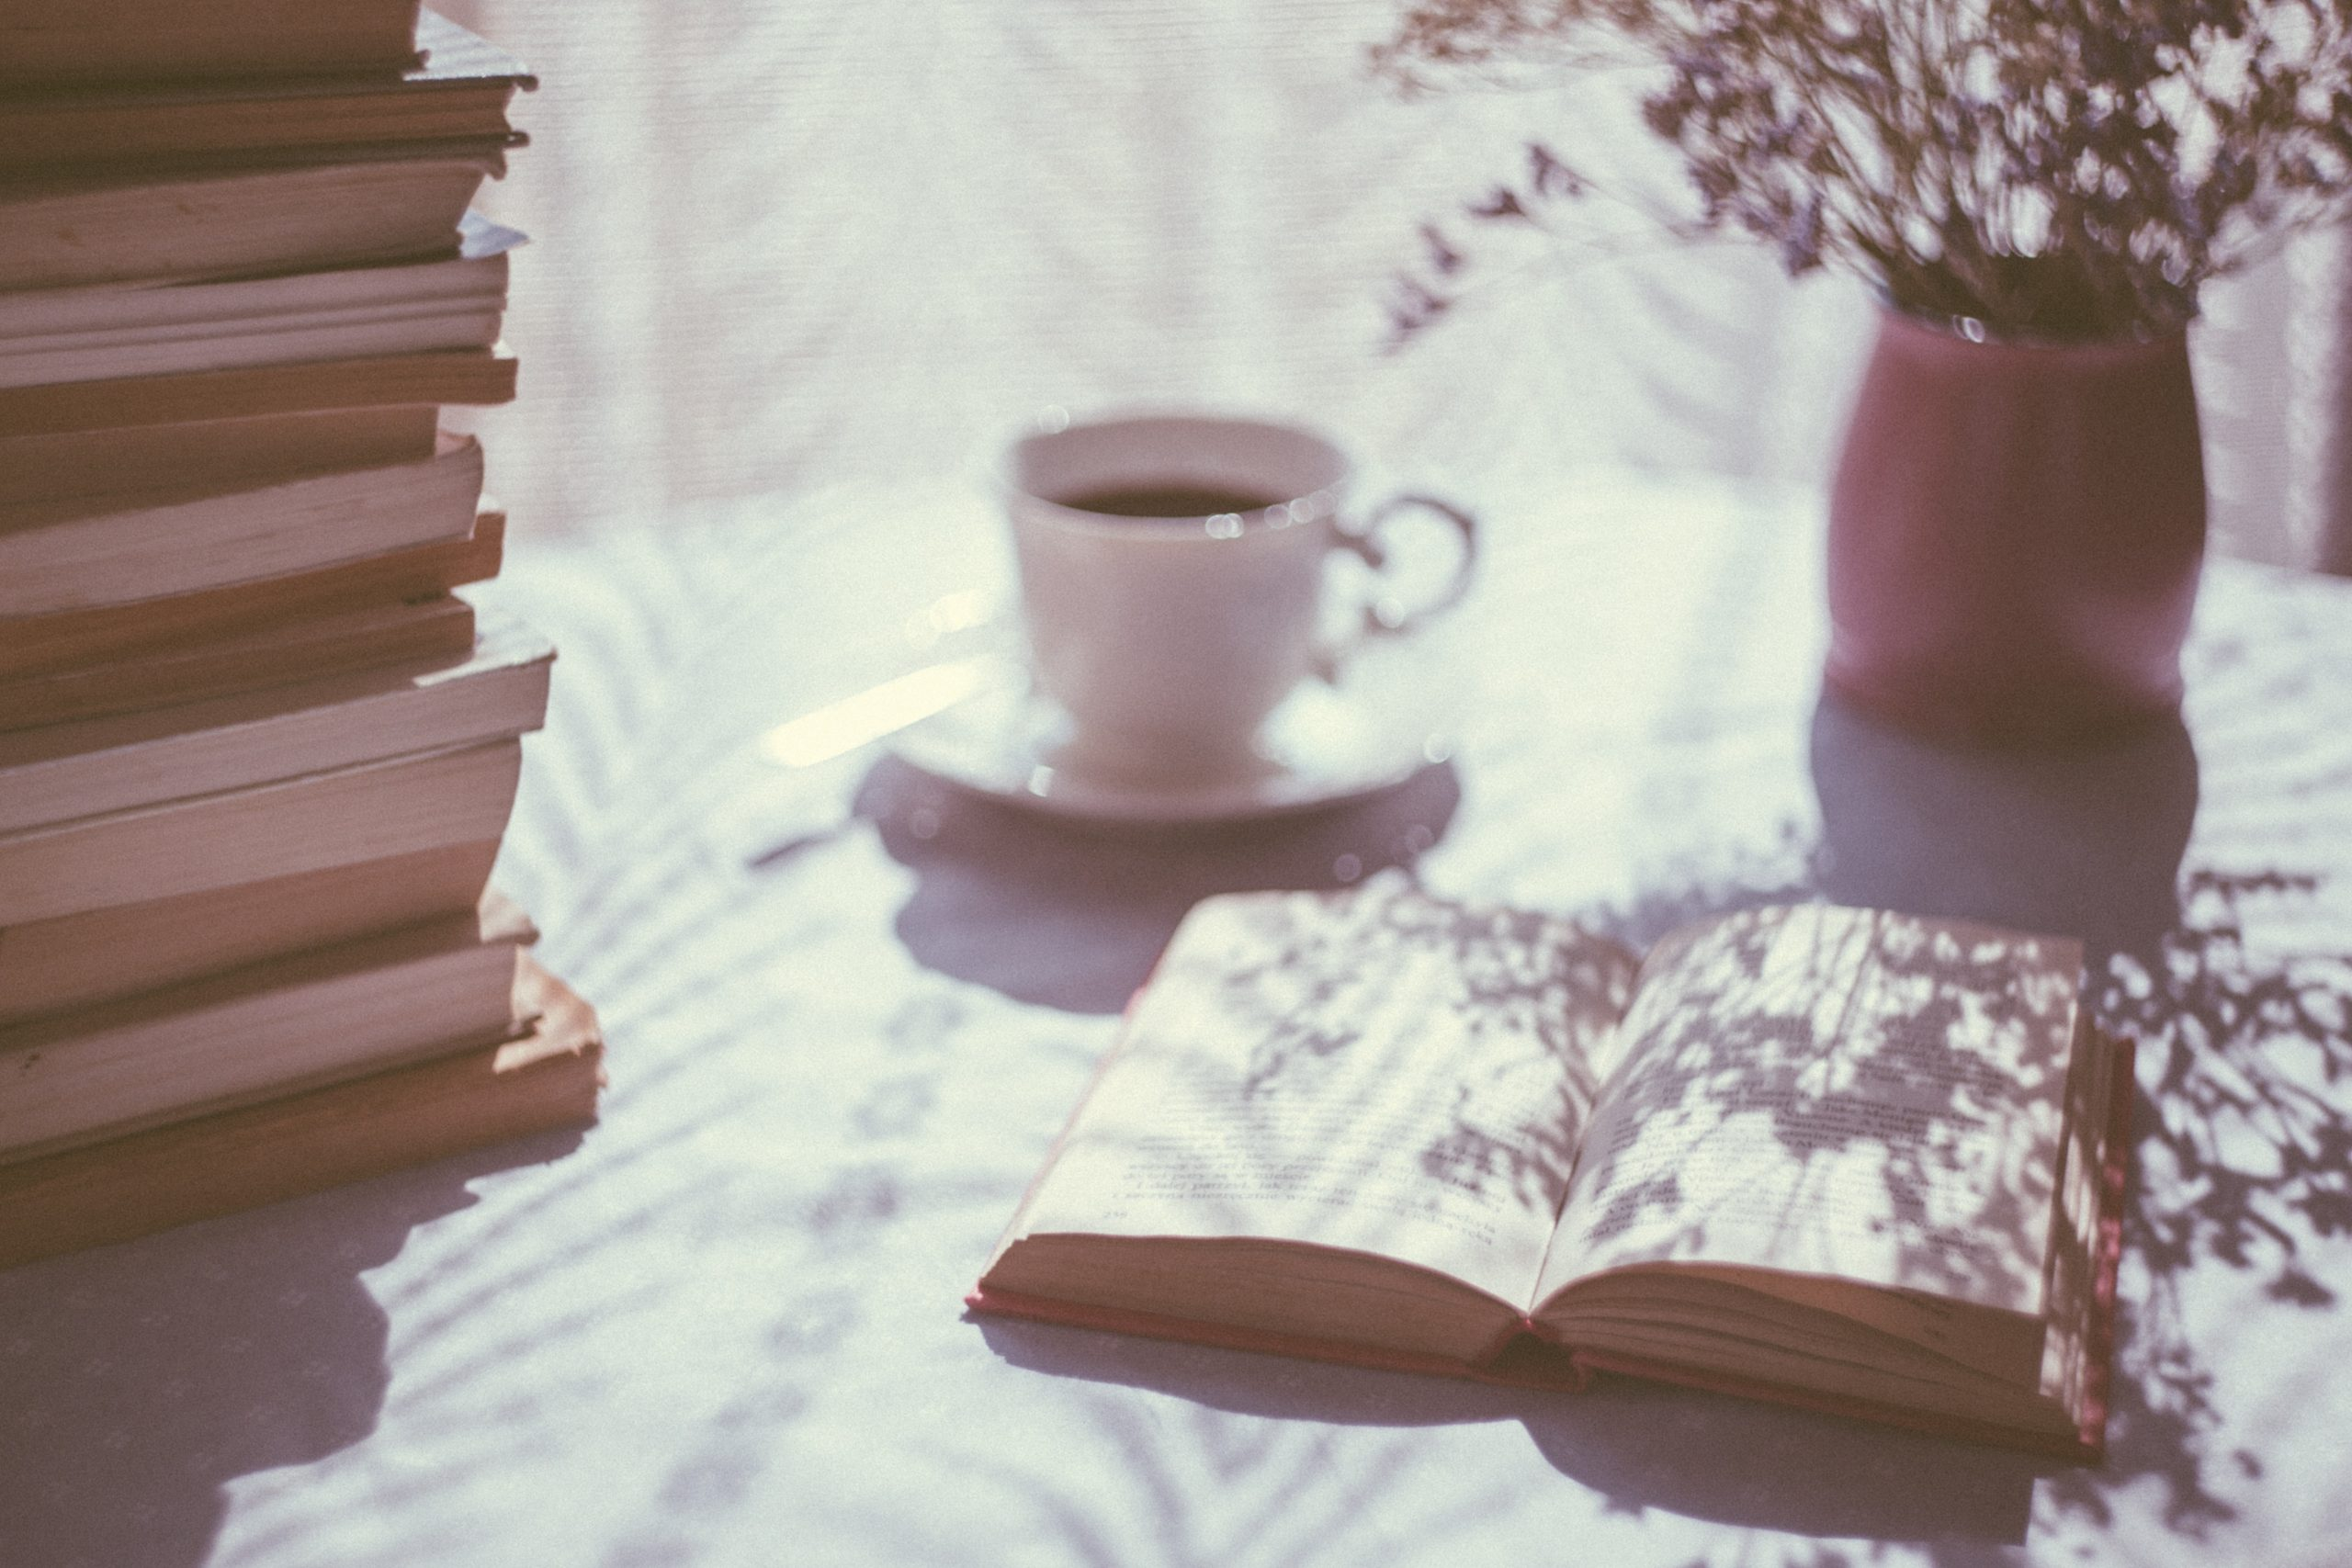 image of an open book and cup on a table